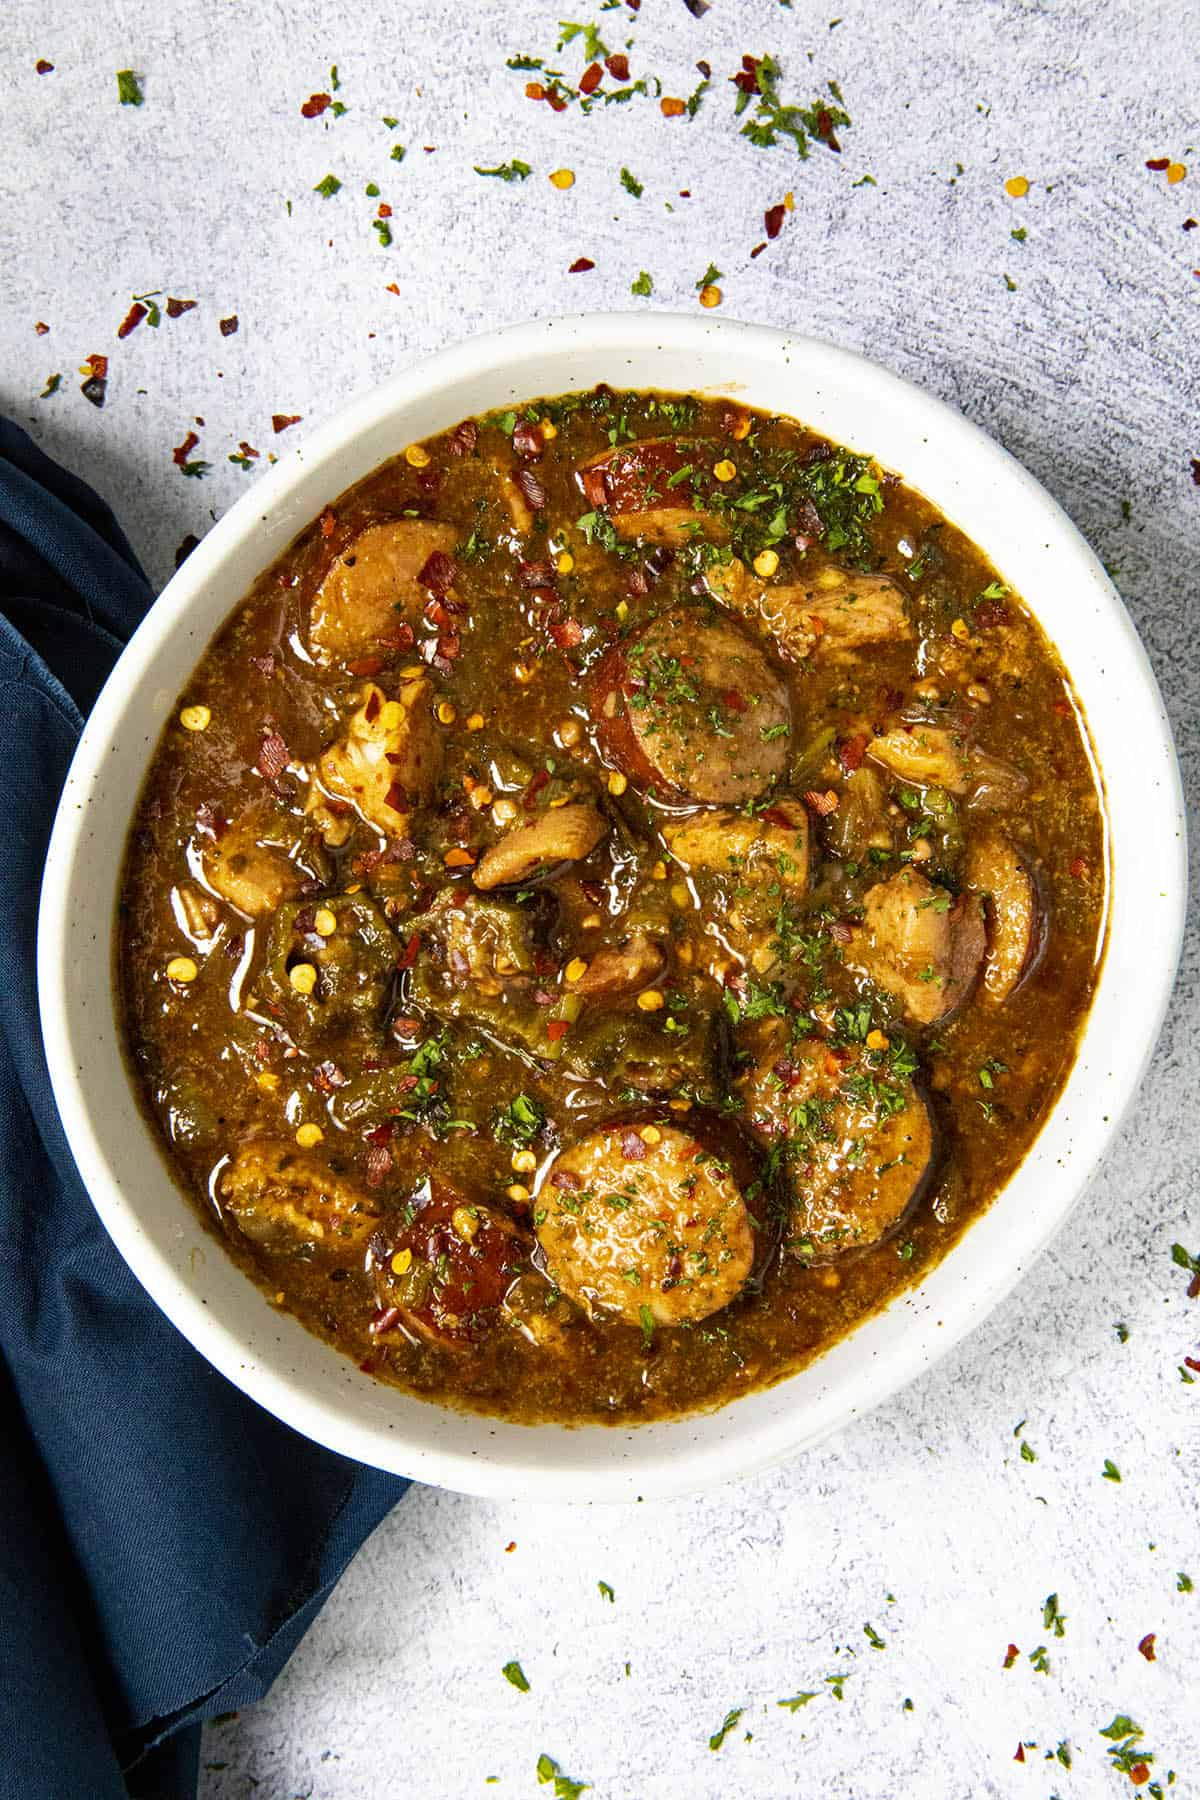 Cajun Chicken and Sausage Gumbo in a bowl